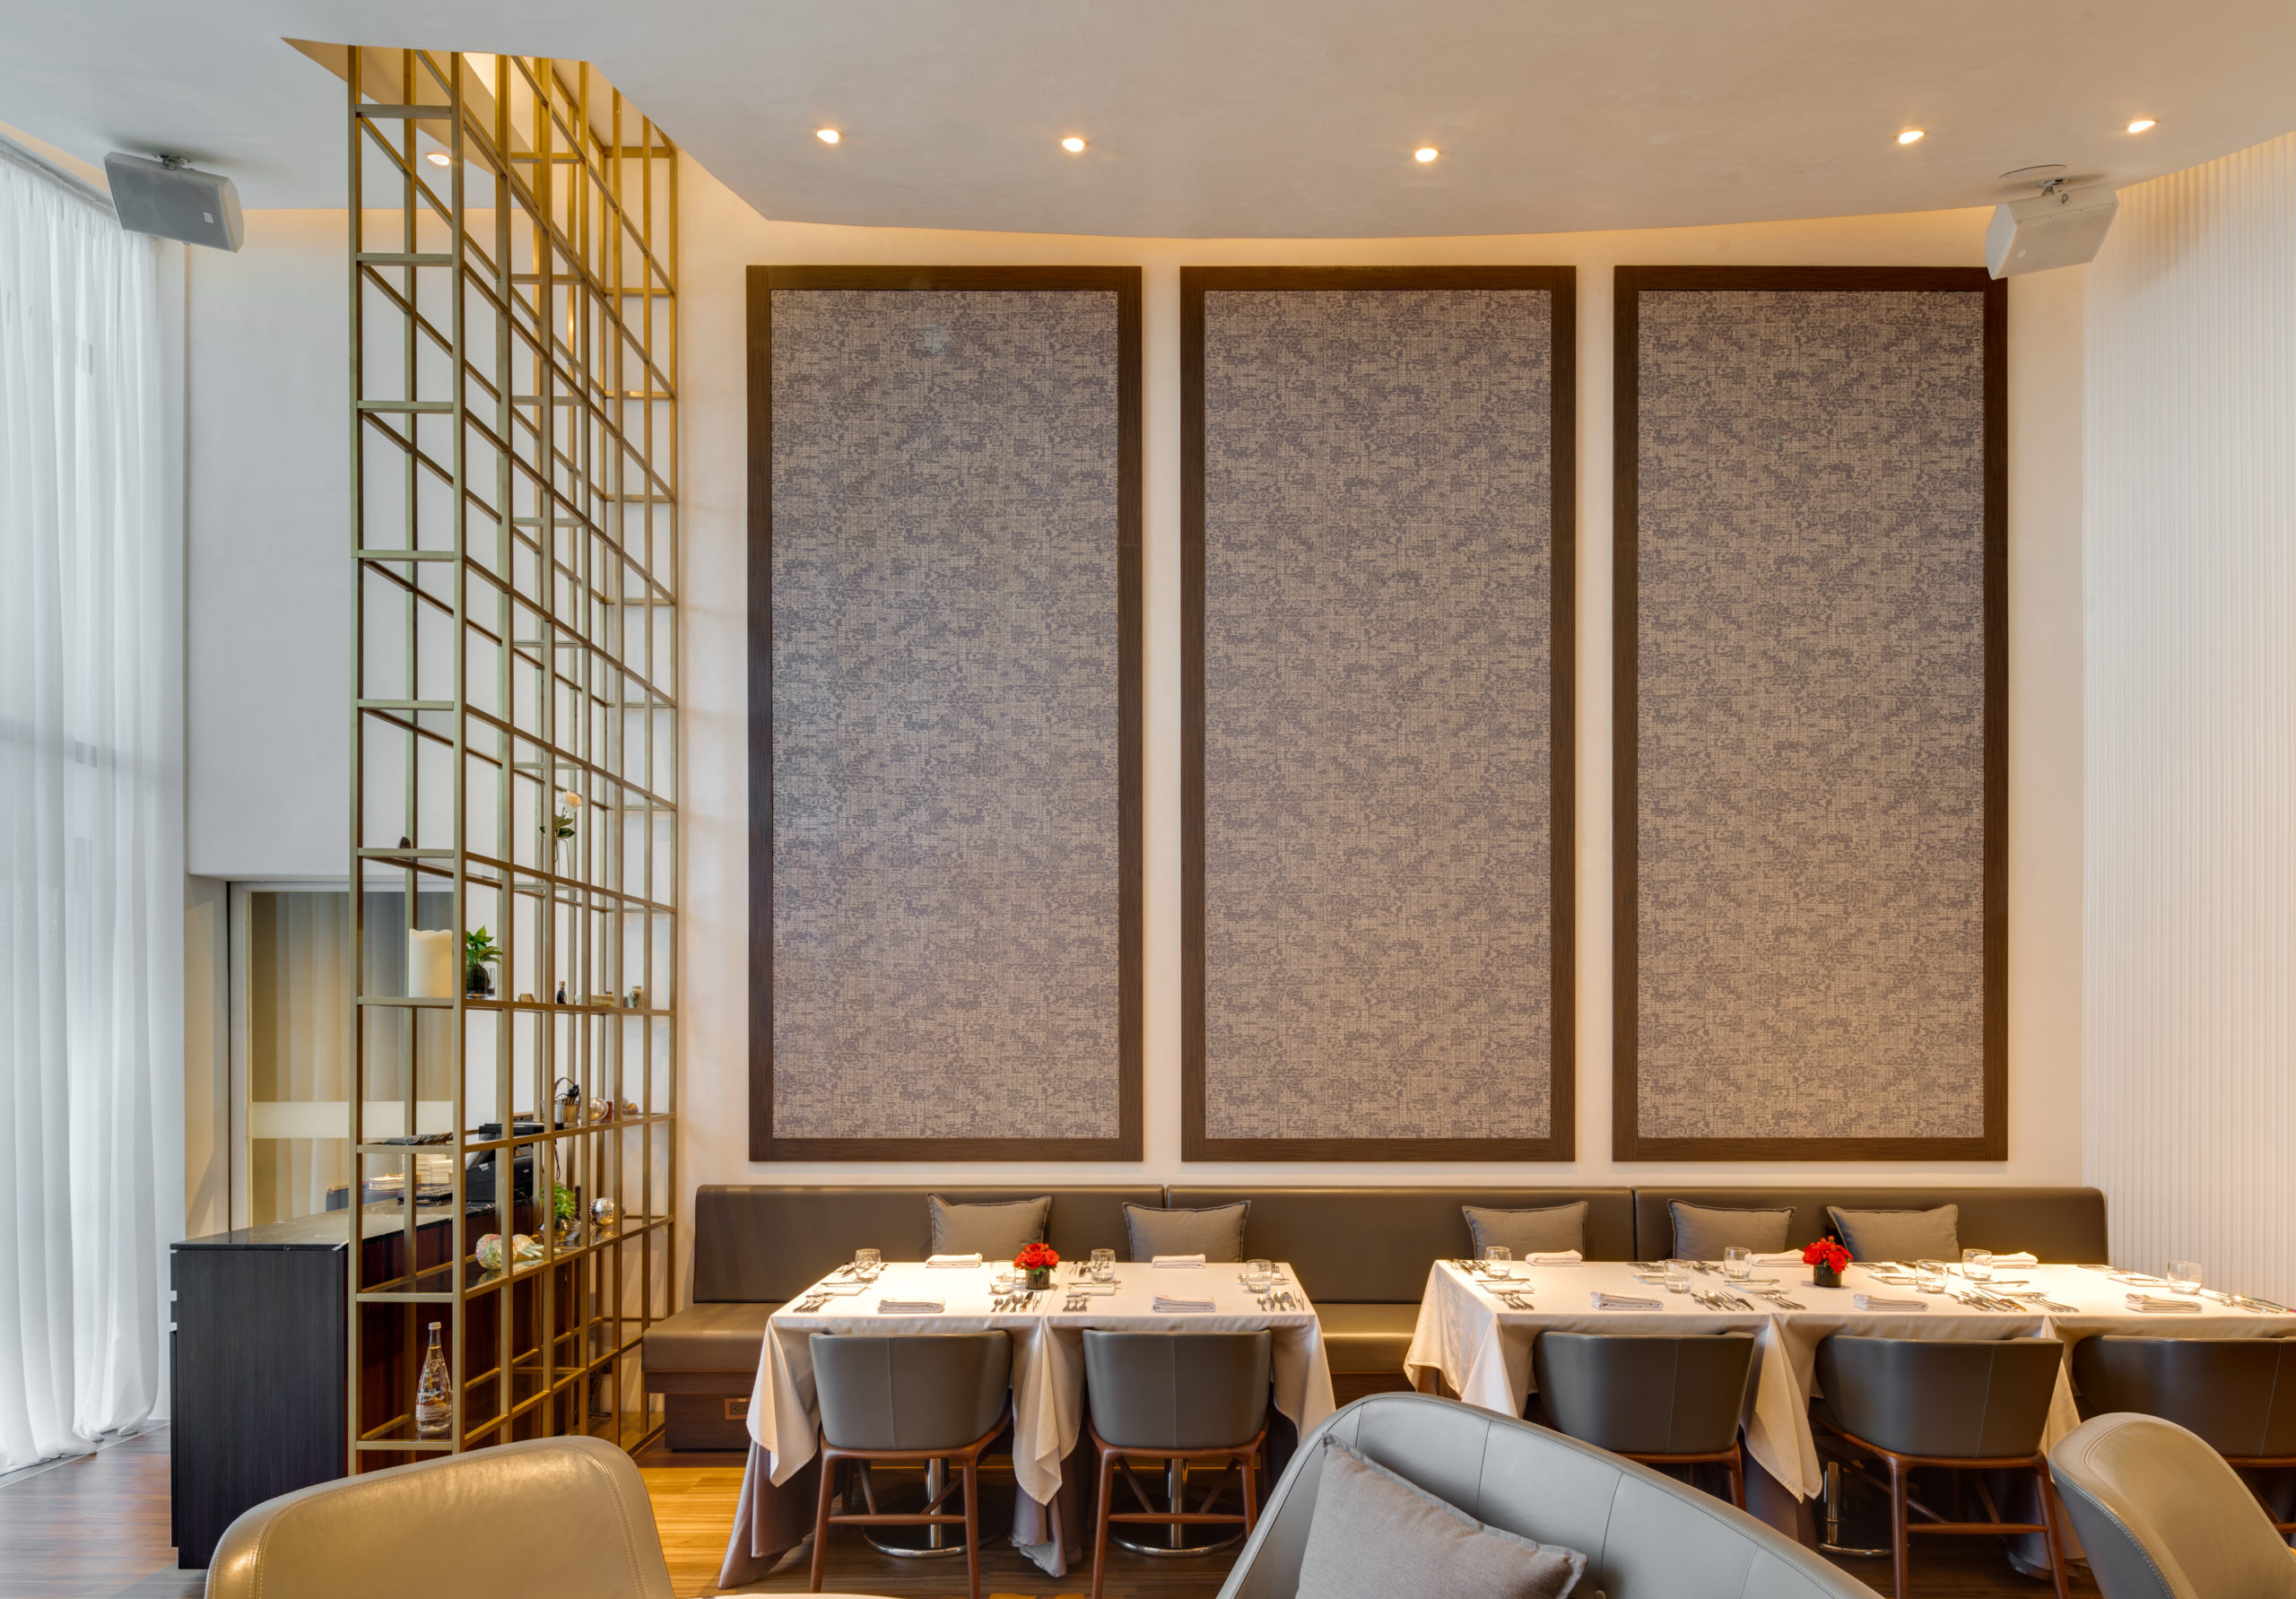 spatial practice architecture office Los Angeles Hong Kong Fleur de sel restaurant taichung taiwan interior wall canvas